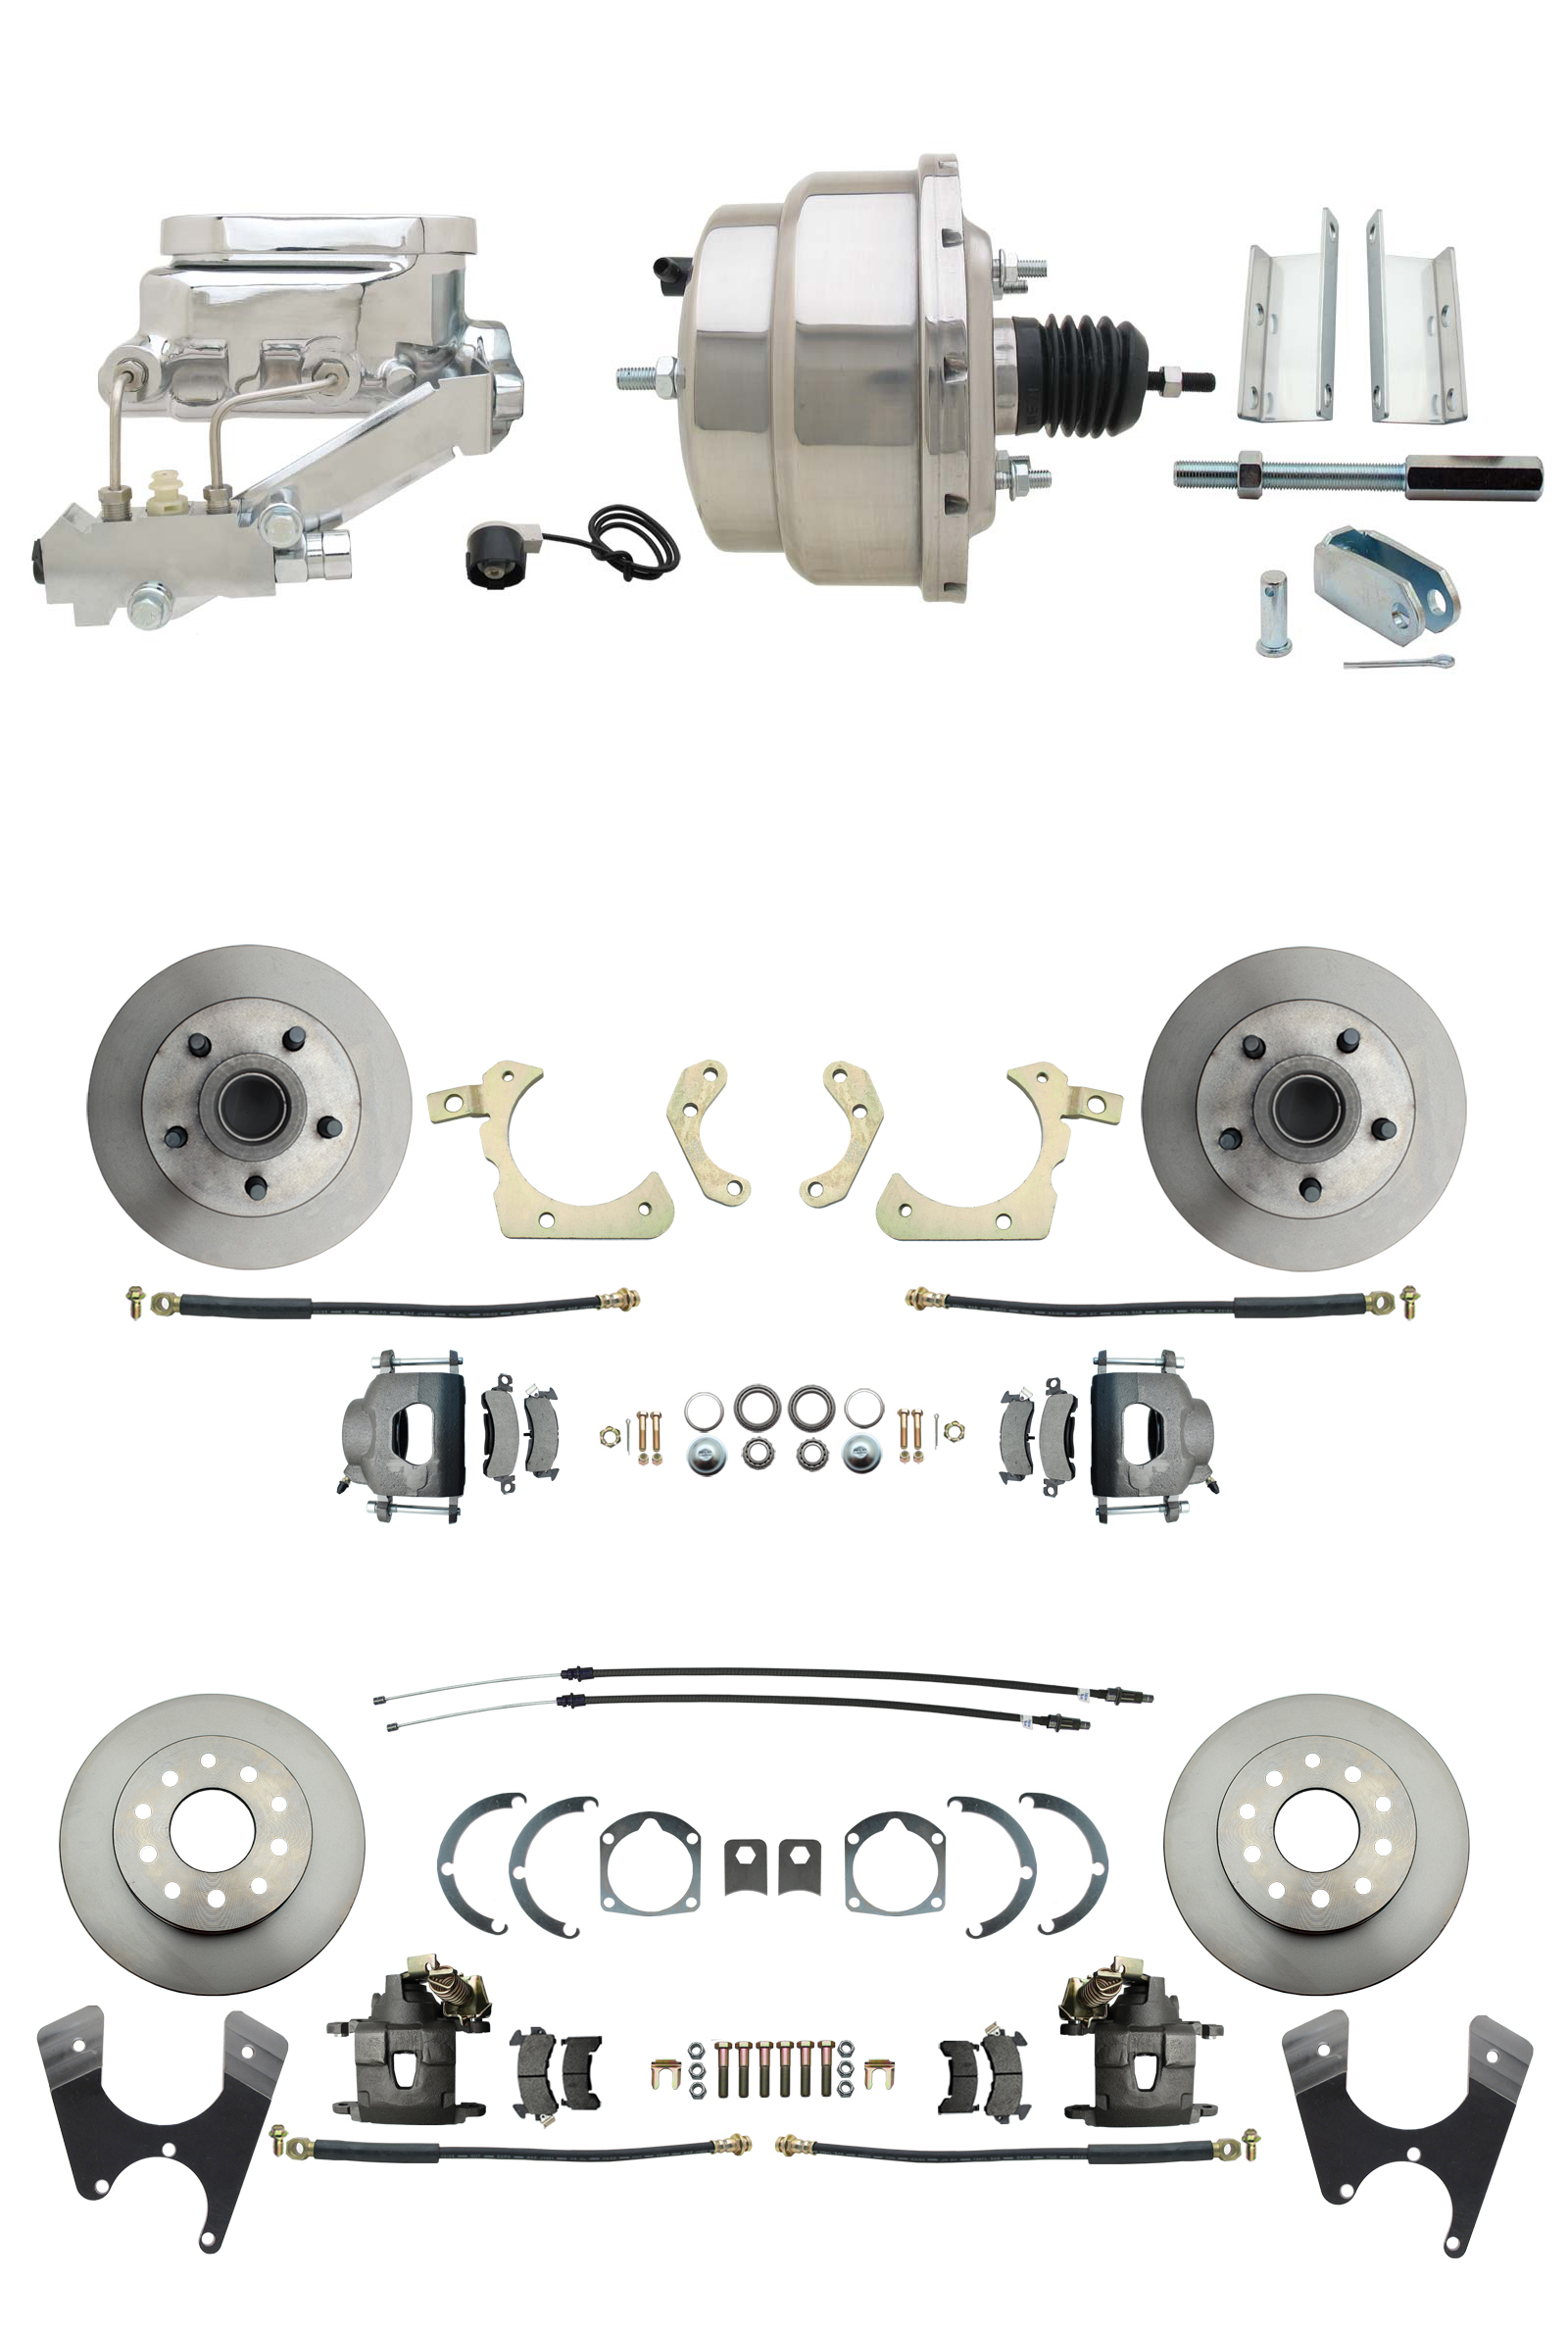 1955-1958 GM Full Size Front & Rear Power Disc Brake Kit (Impala, Bel Air, Biscayne) & 8 Dual Stainless Steel Booster Conversion Kit W/ Chrome Flat Top Master Cylinder Left Mount Disc/ Disc Proportioning Valve Kit